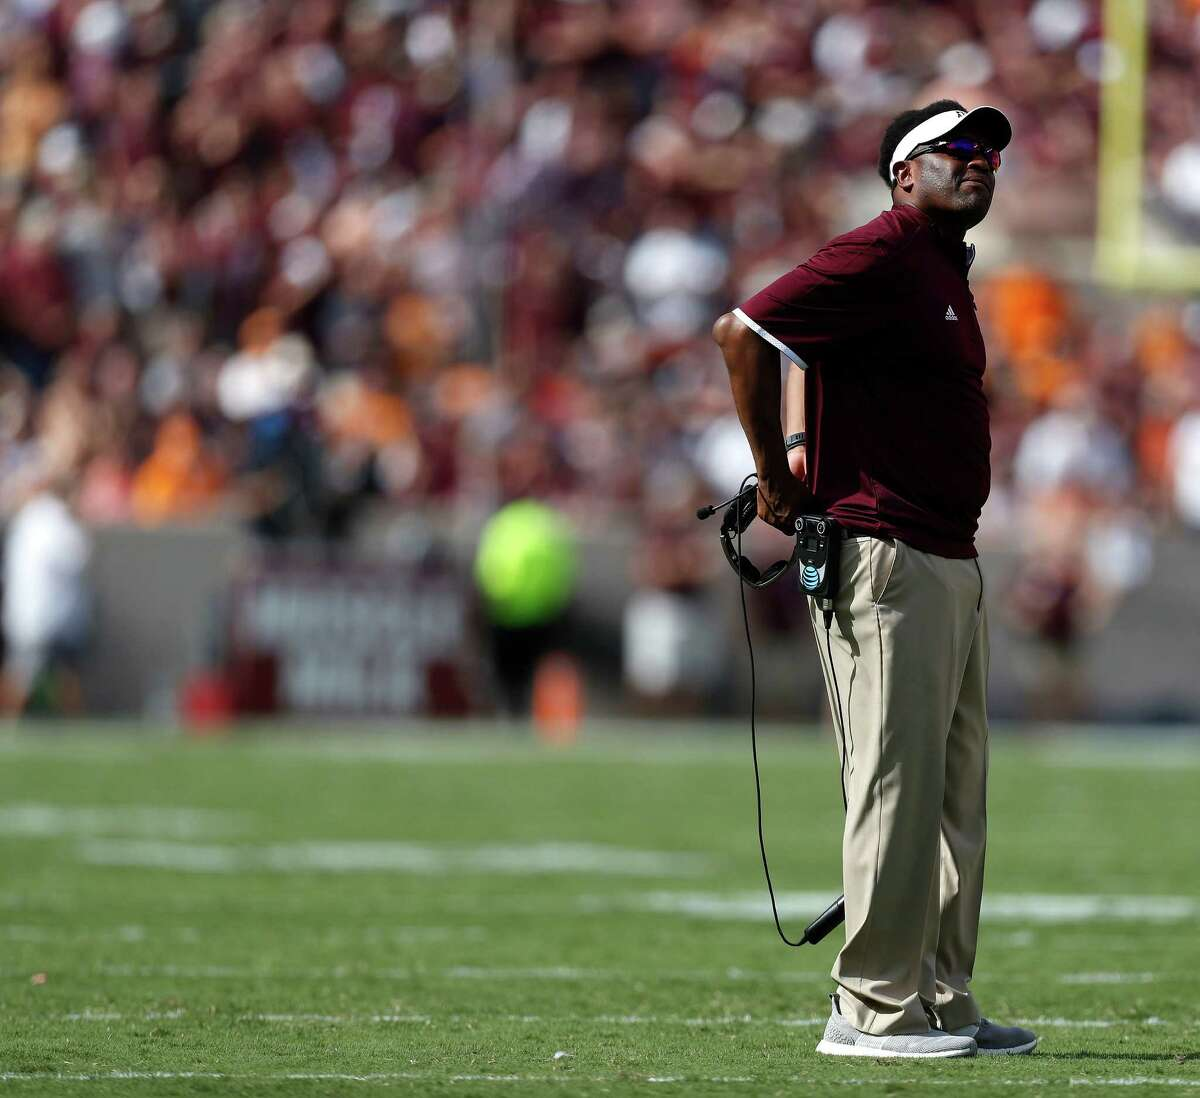 Texas A&M Aggies head coach Kevin Sumlin on the field during the first quarter of a college football game at Kyle Field, Saturday, Oct. 8, 2016 in College Station. ( Karen Warren / Houston Chronicle )